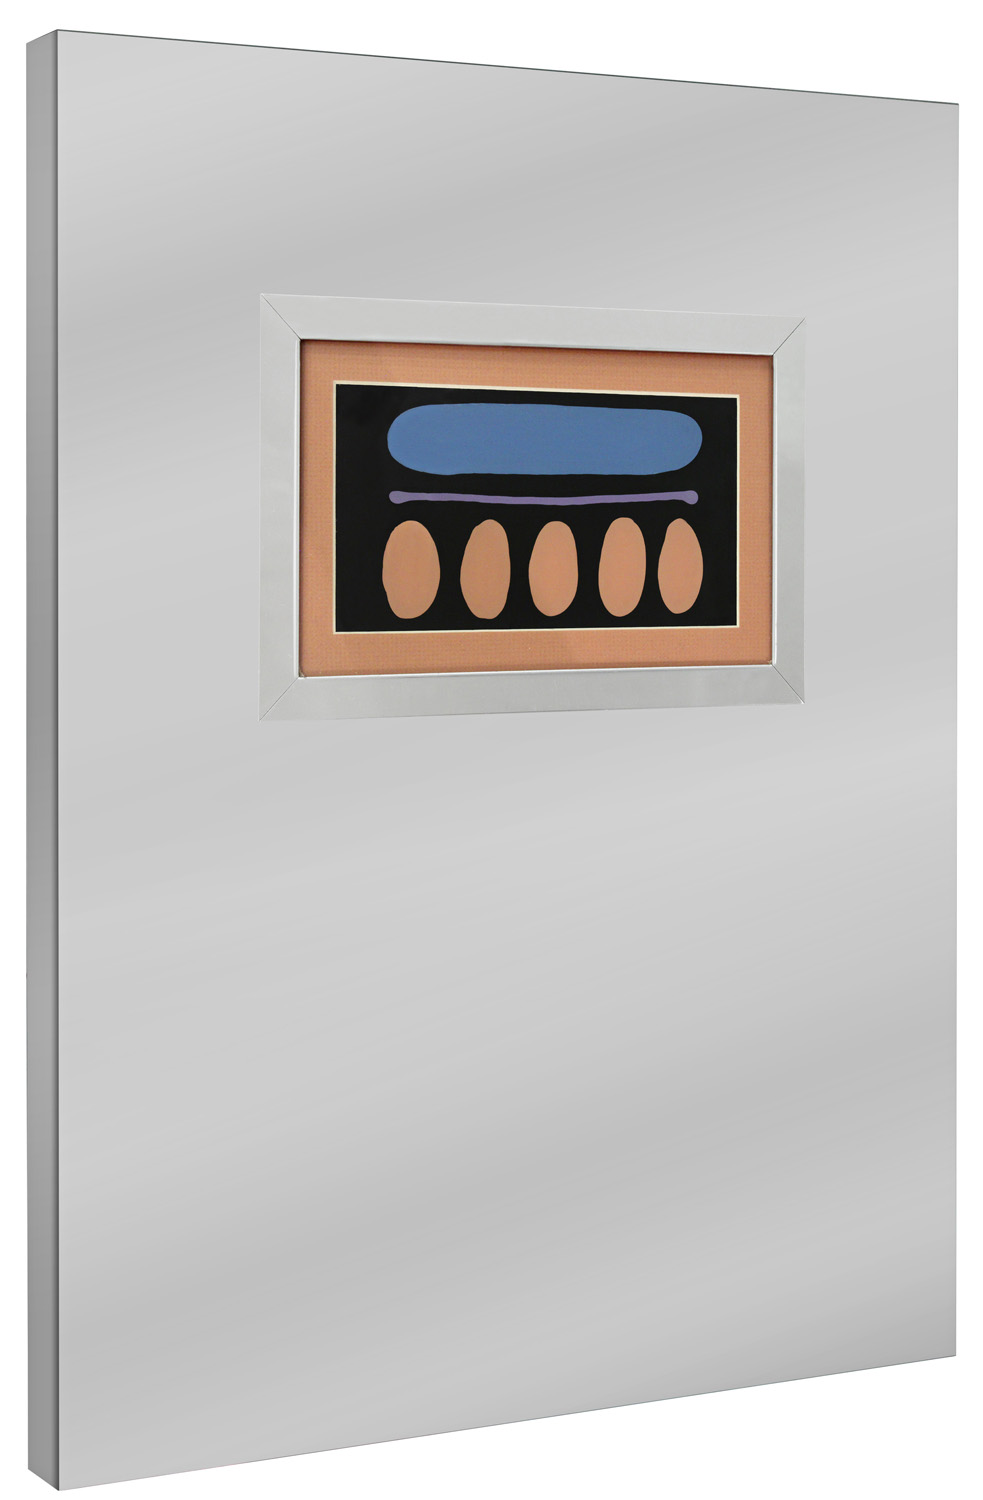 Strong 35 graphic+stainless panel painting133 hires.jpg